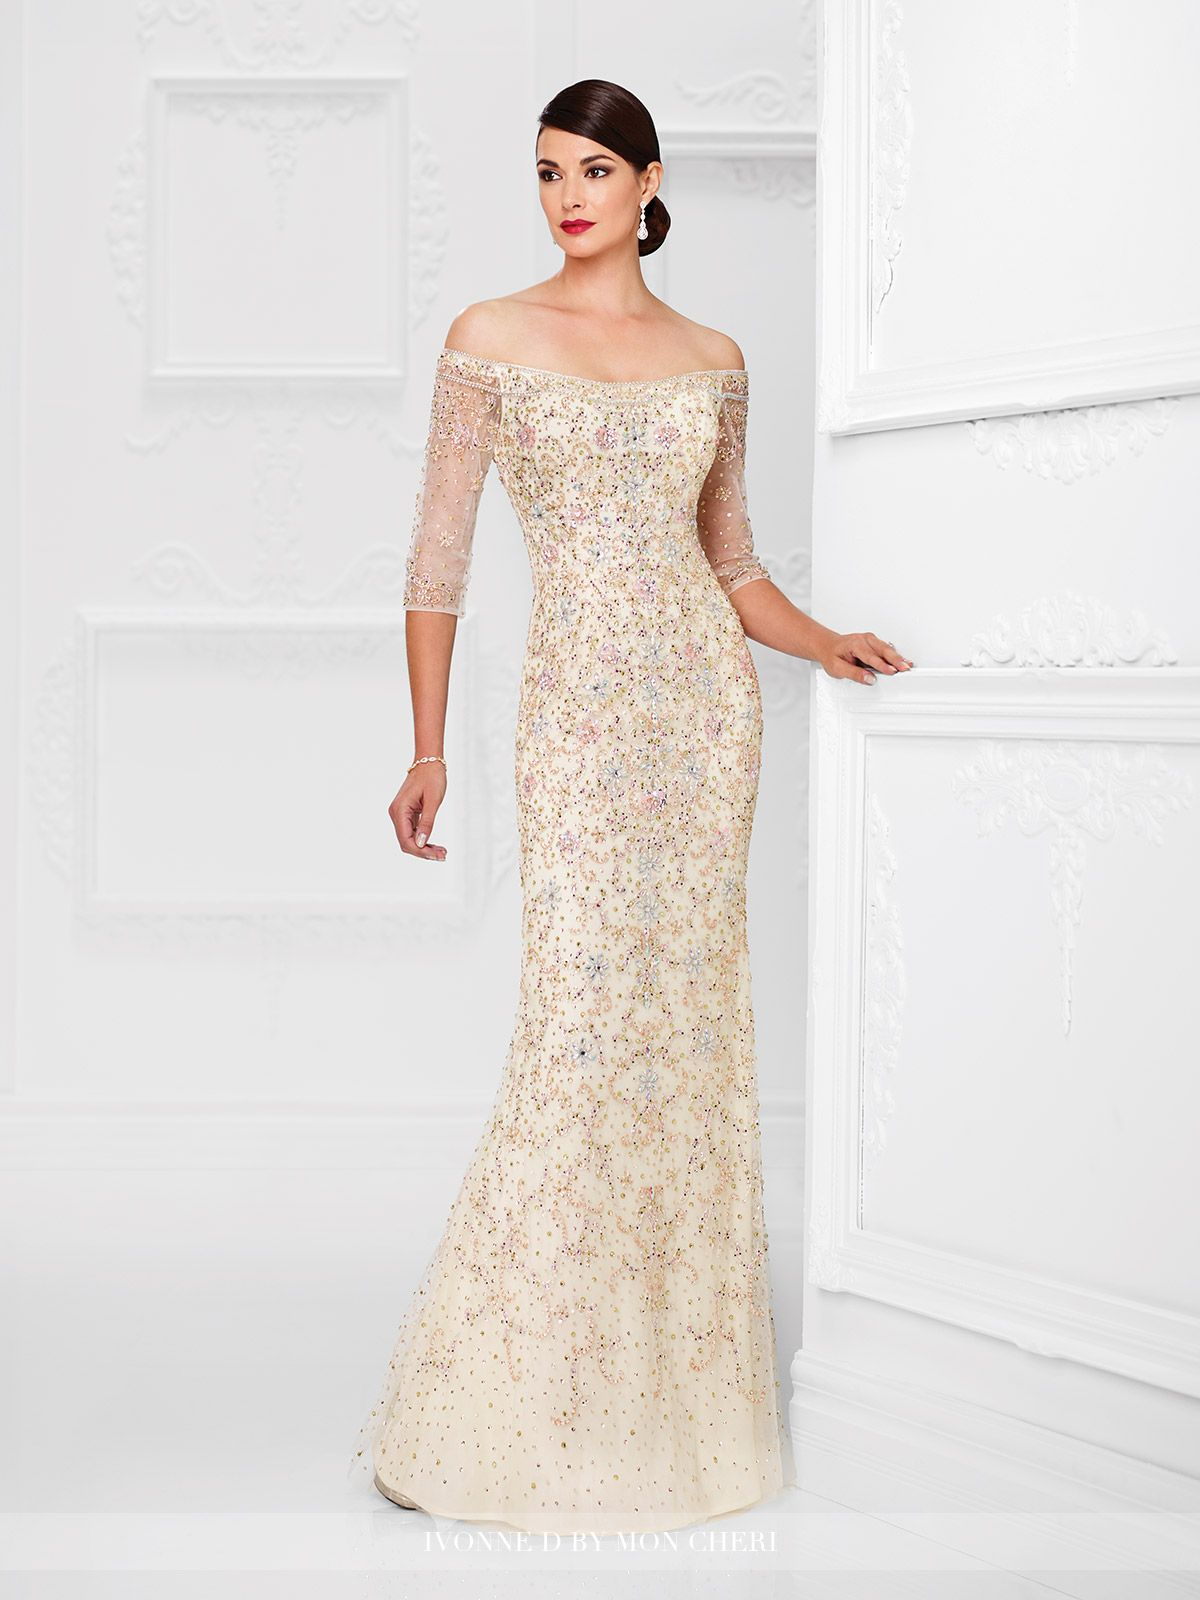 Couture Ivonne D Mother of the Bride Dresses 2019 for Mon Cheri ... 8508f7ea9